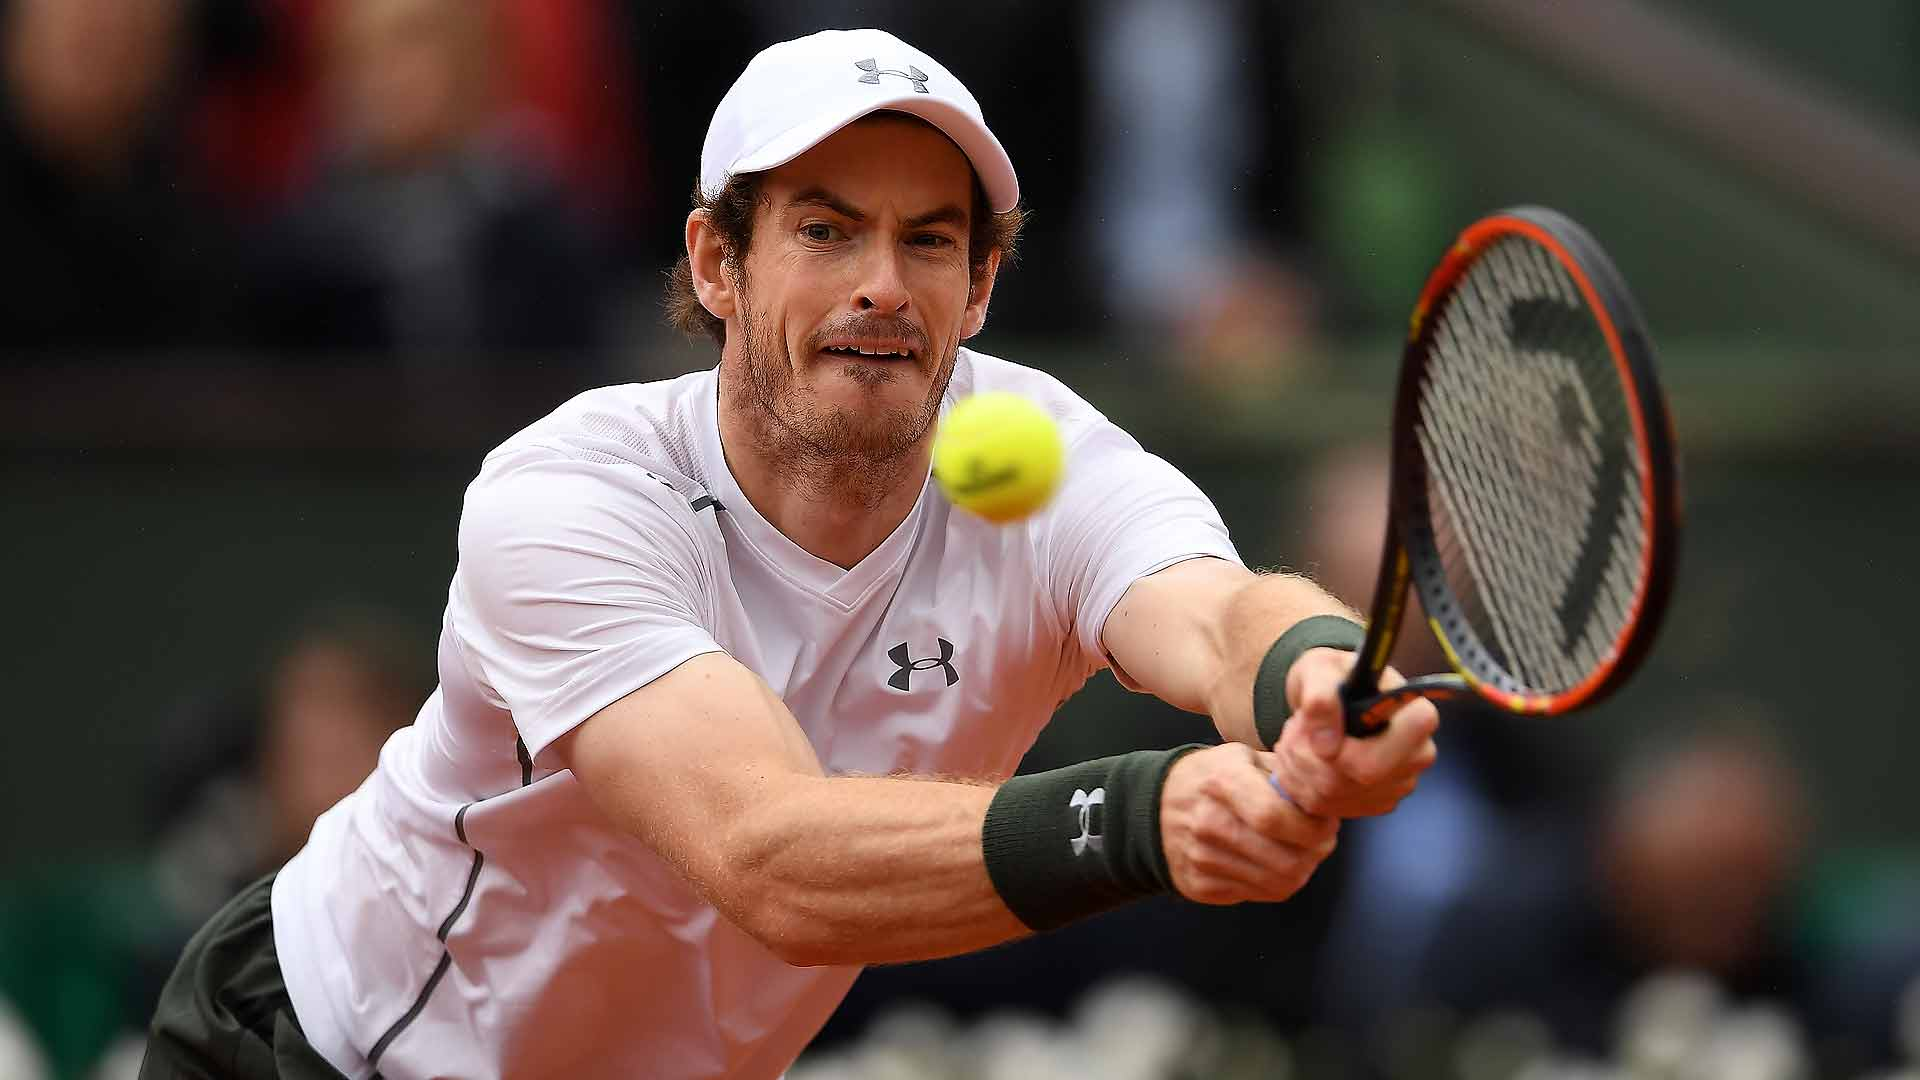 andy murray - photo #32